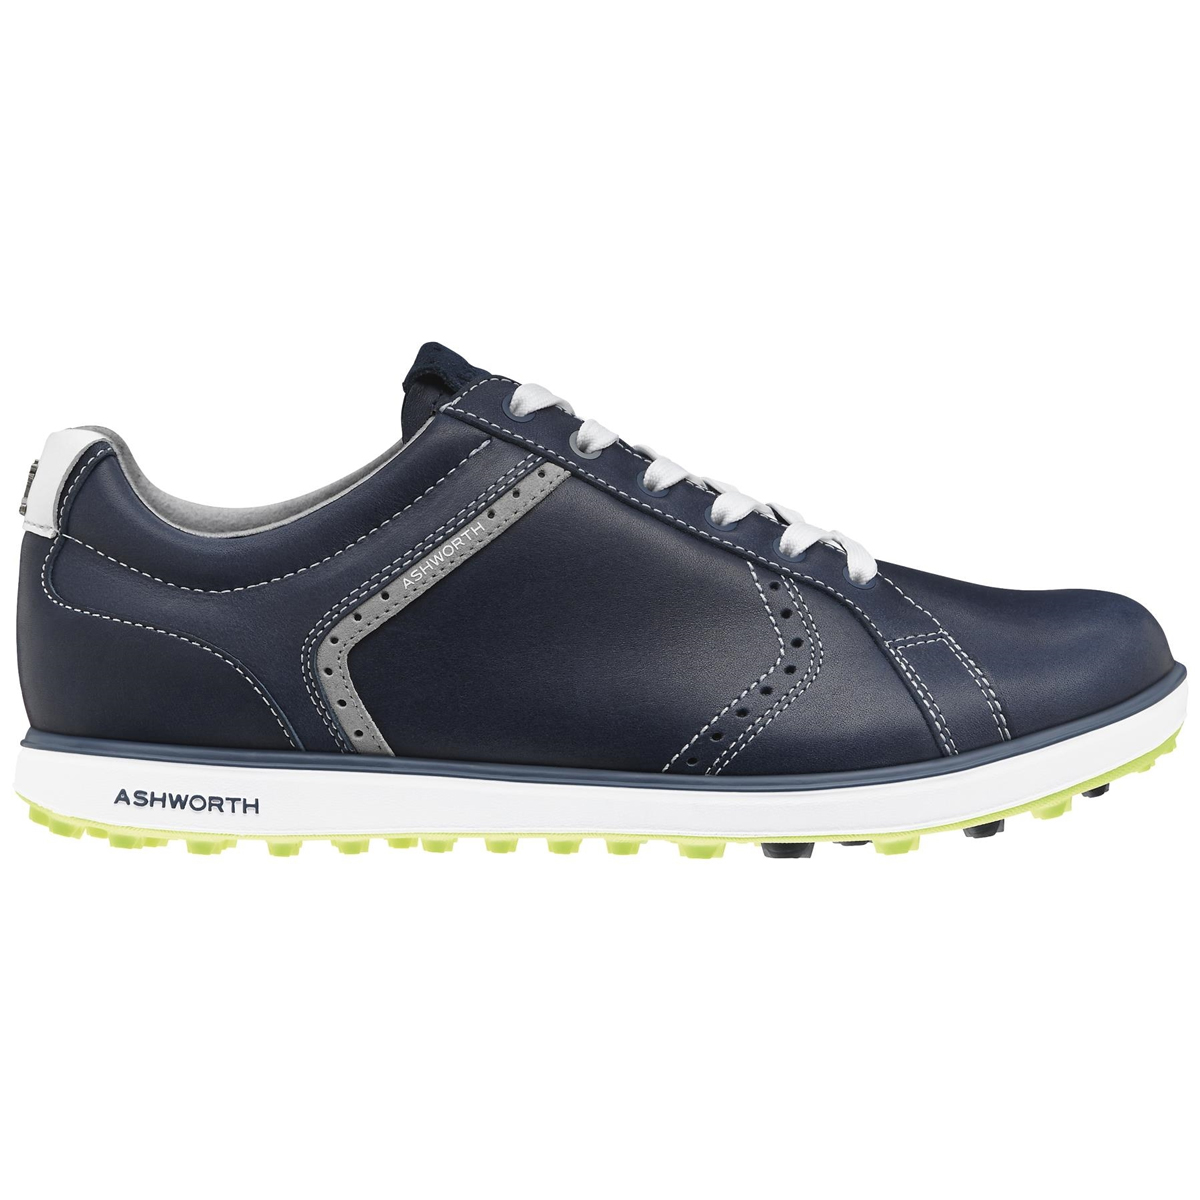 Ashworth Cardiff Spikeless Golf Shoes